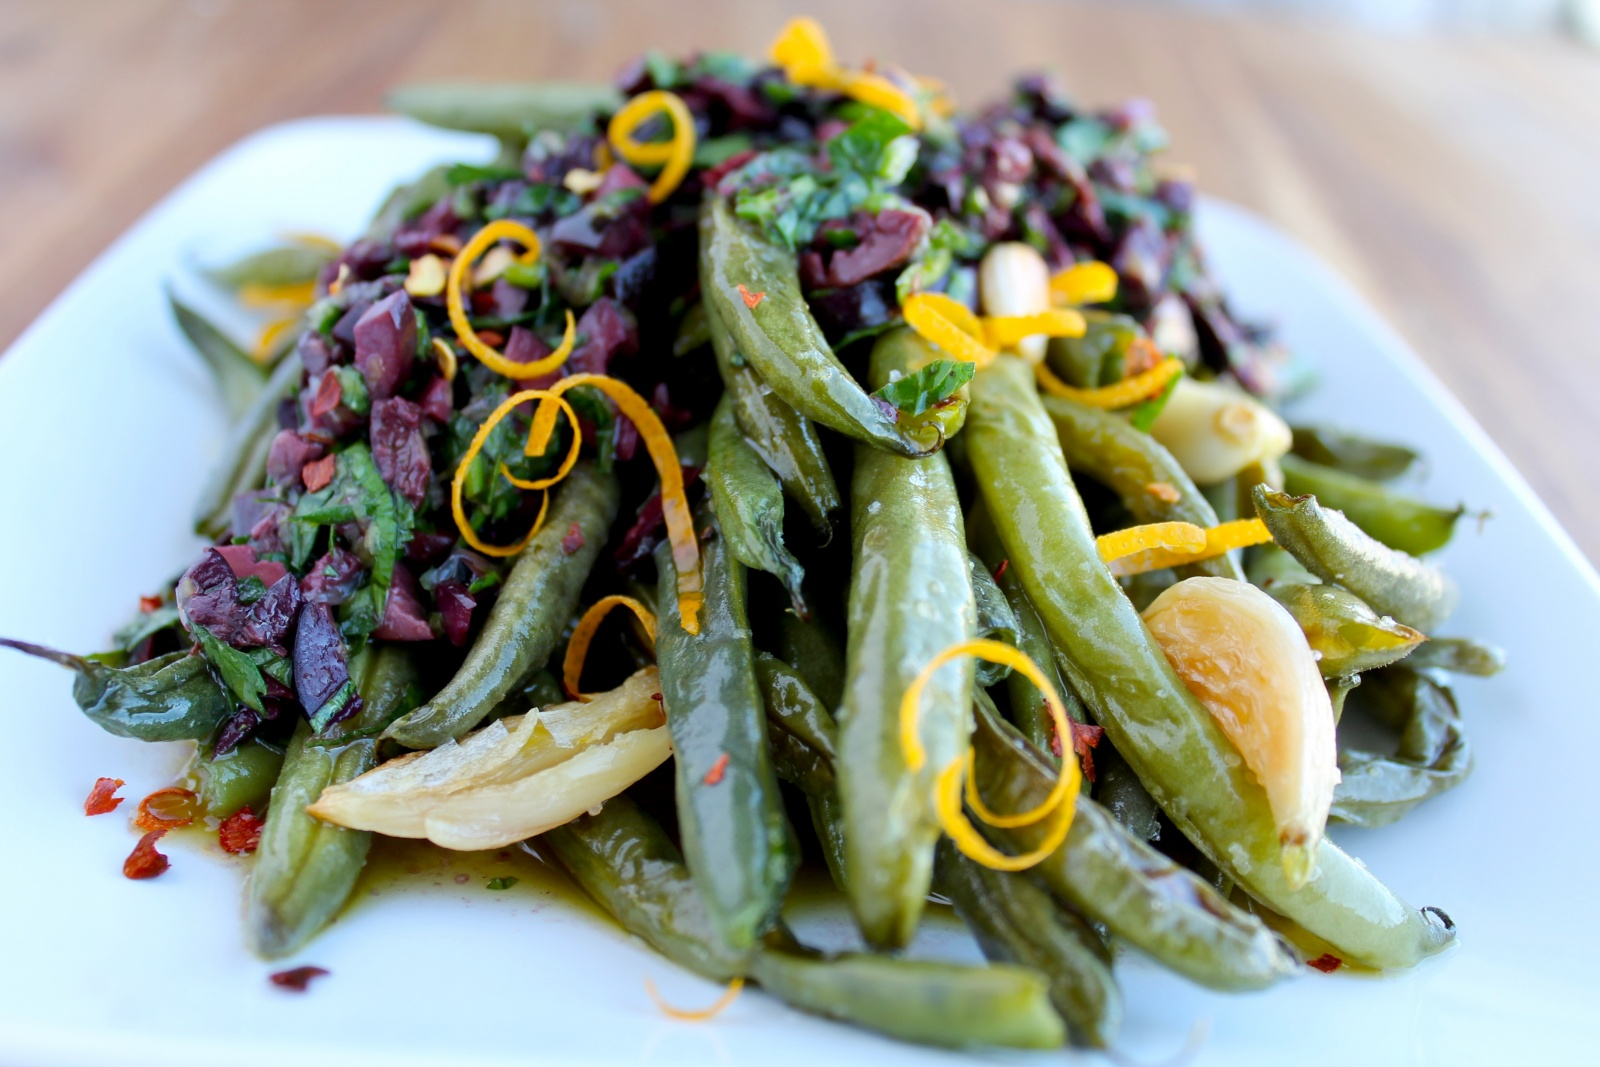 The Zenbelly Cookbook Sneak Peek: roasted green beans with kalamata olive vinaigrette